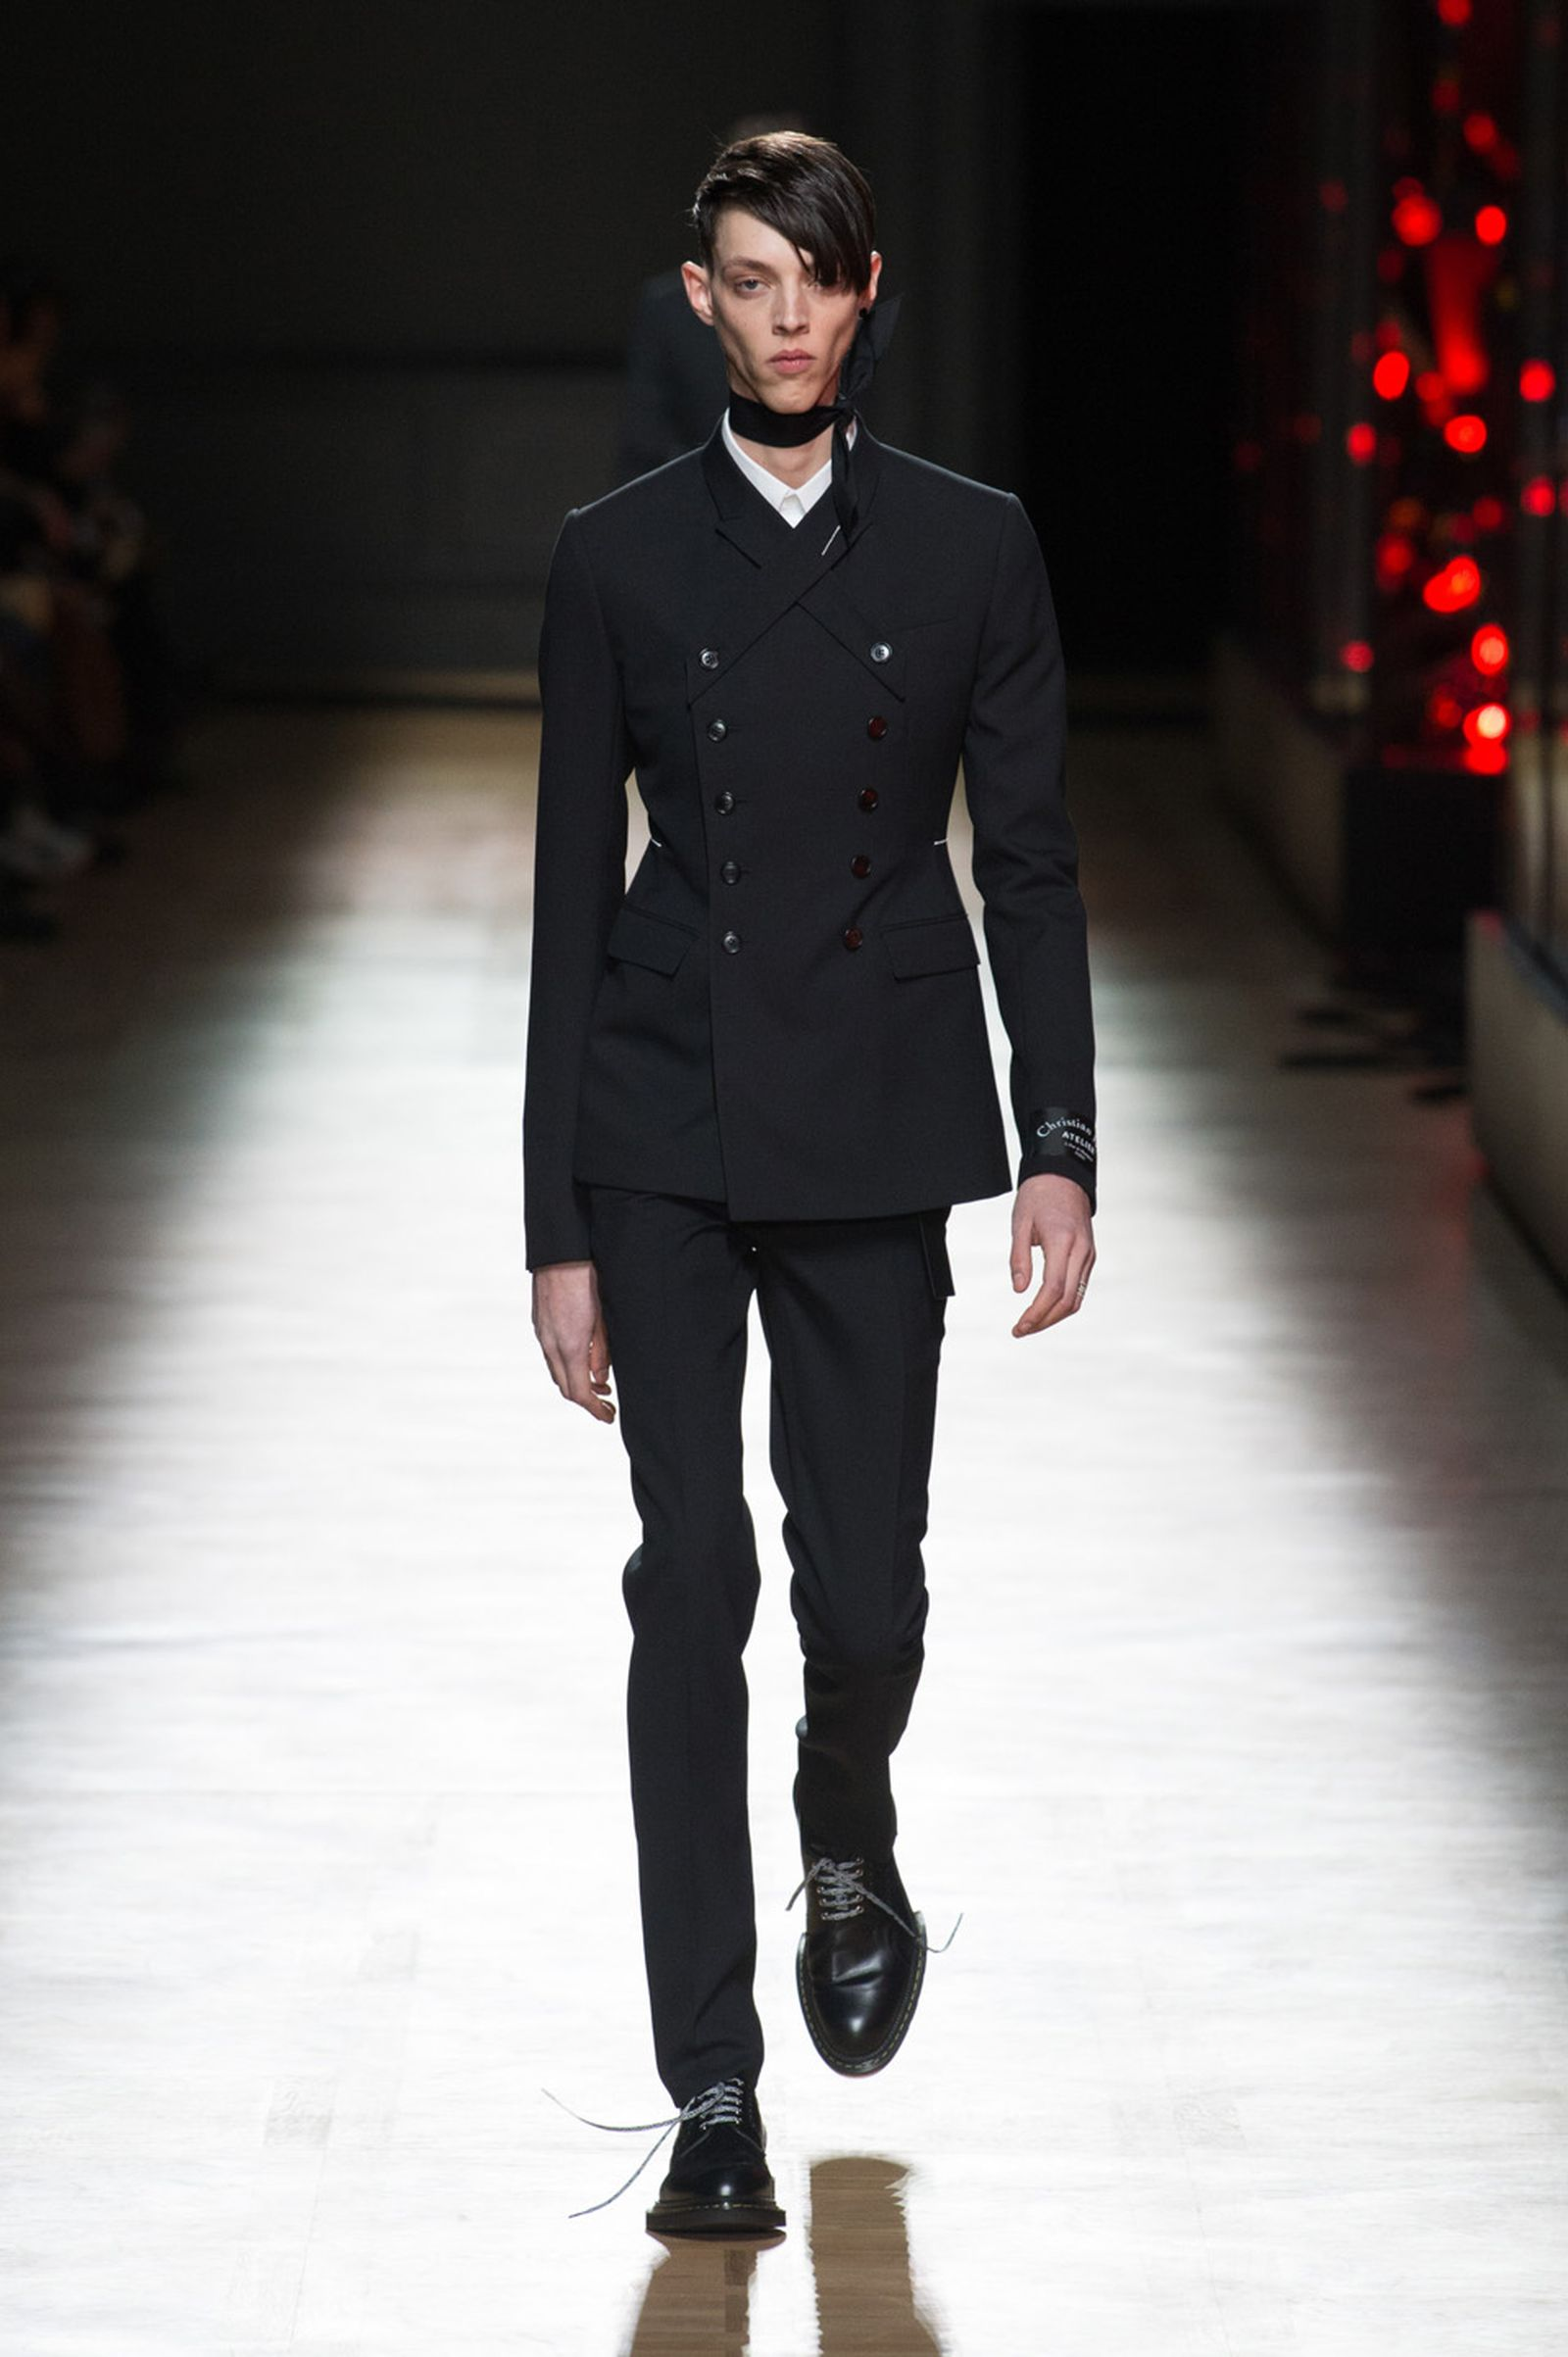 DIOR HOMME WINTER 18 19 BY PATRICE STABLE look04 Fall/WInter 2018 runway